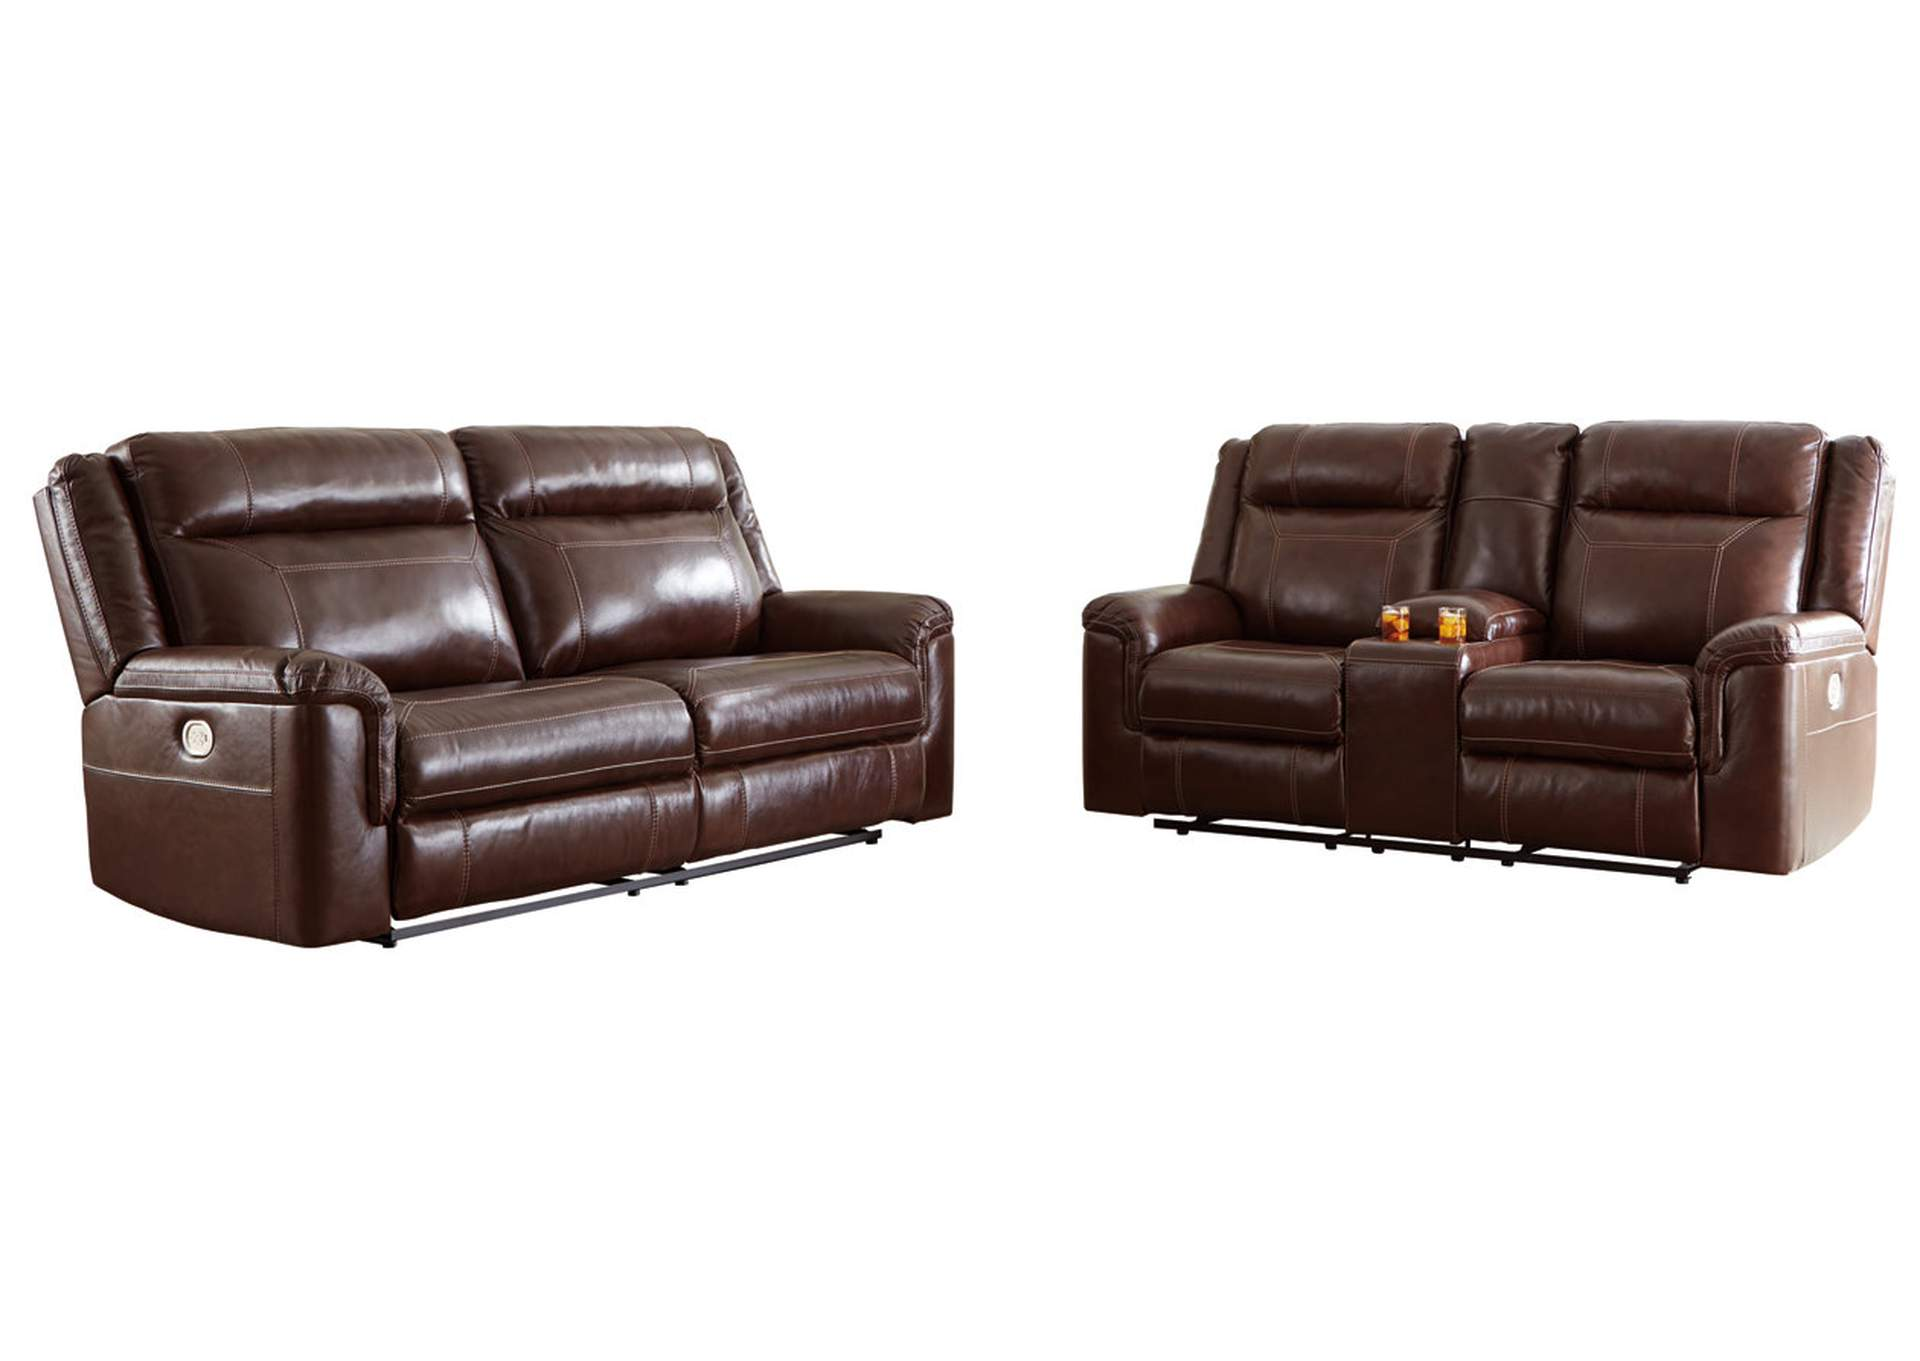 Wyline Coffee Power Reclining Sofa and Loveseat with ADJ Headrest,Signature Design By Ashley